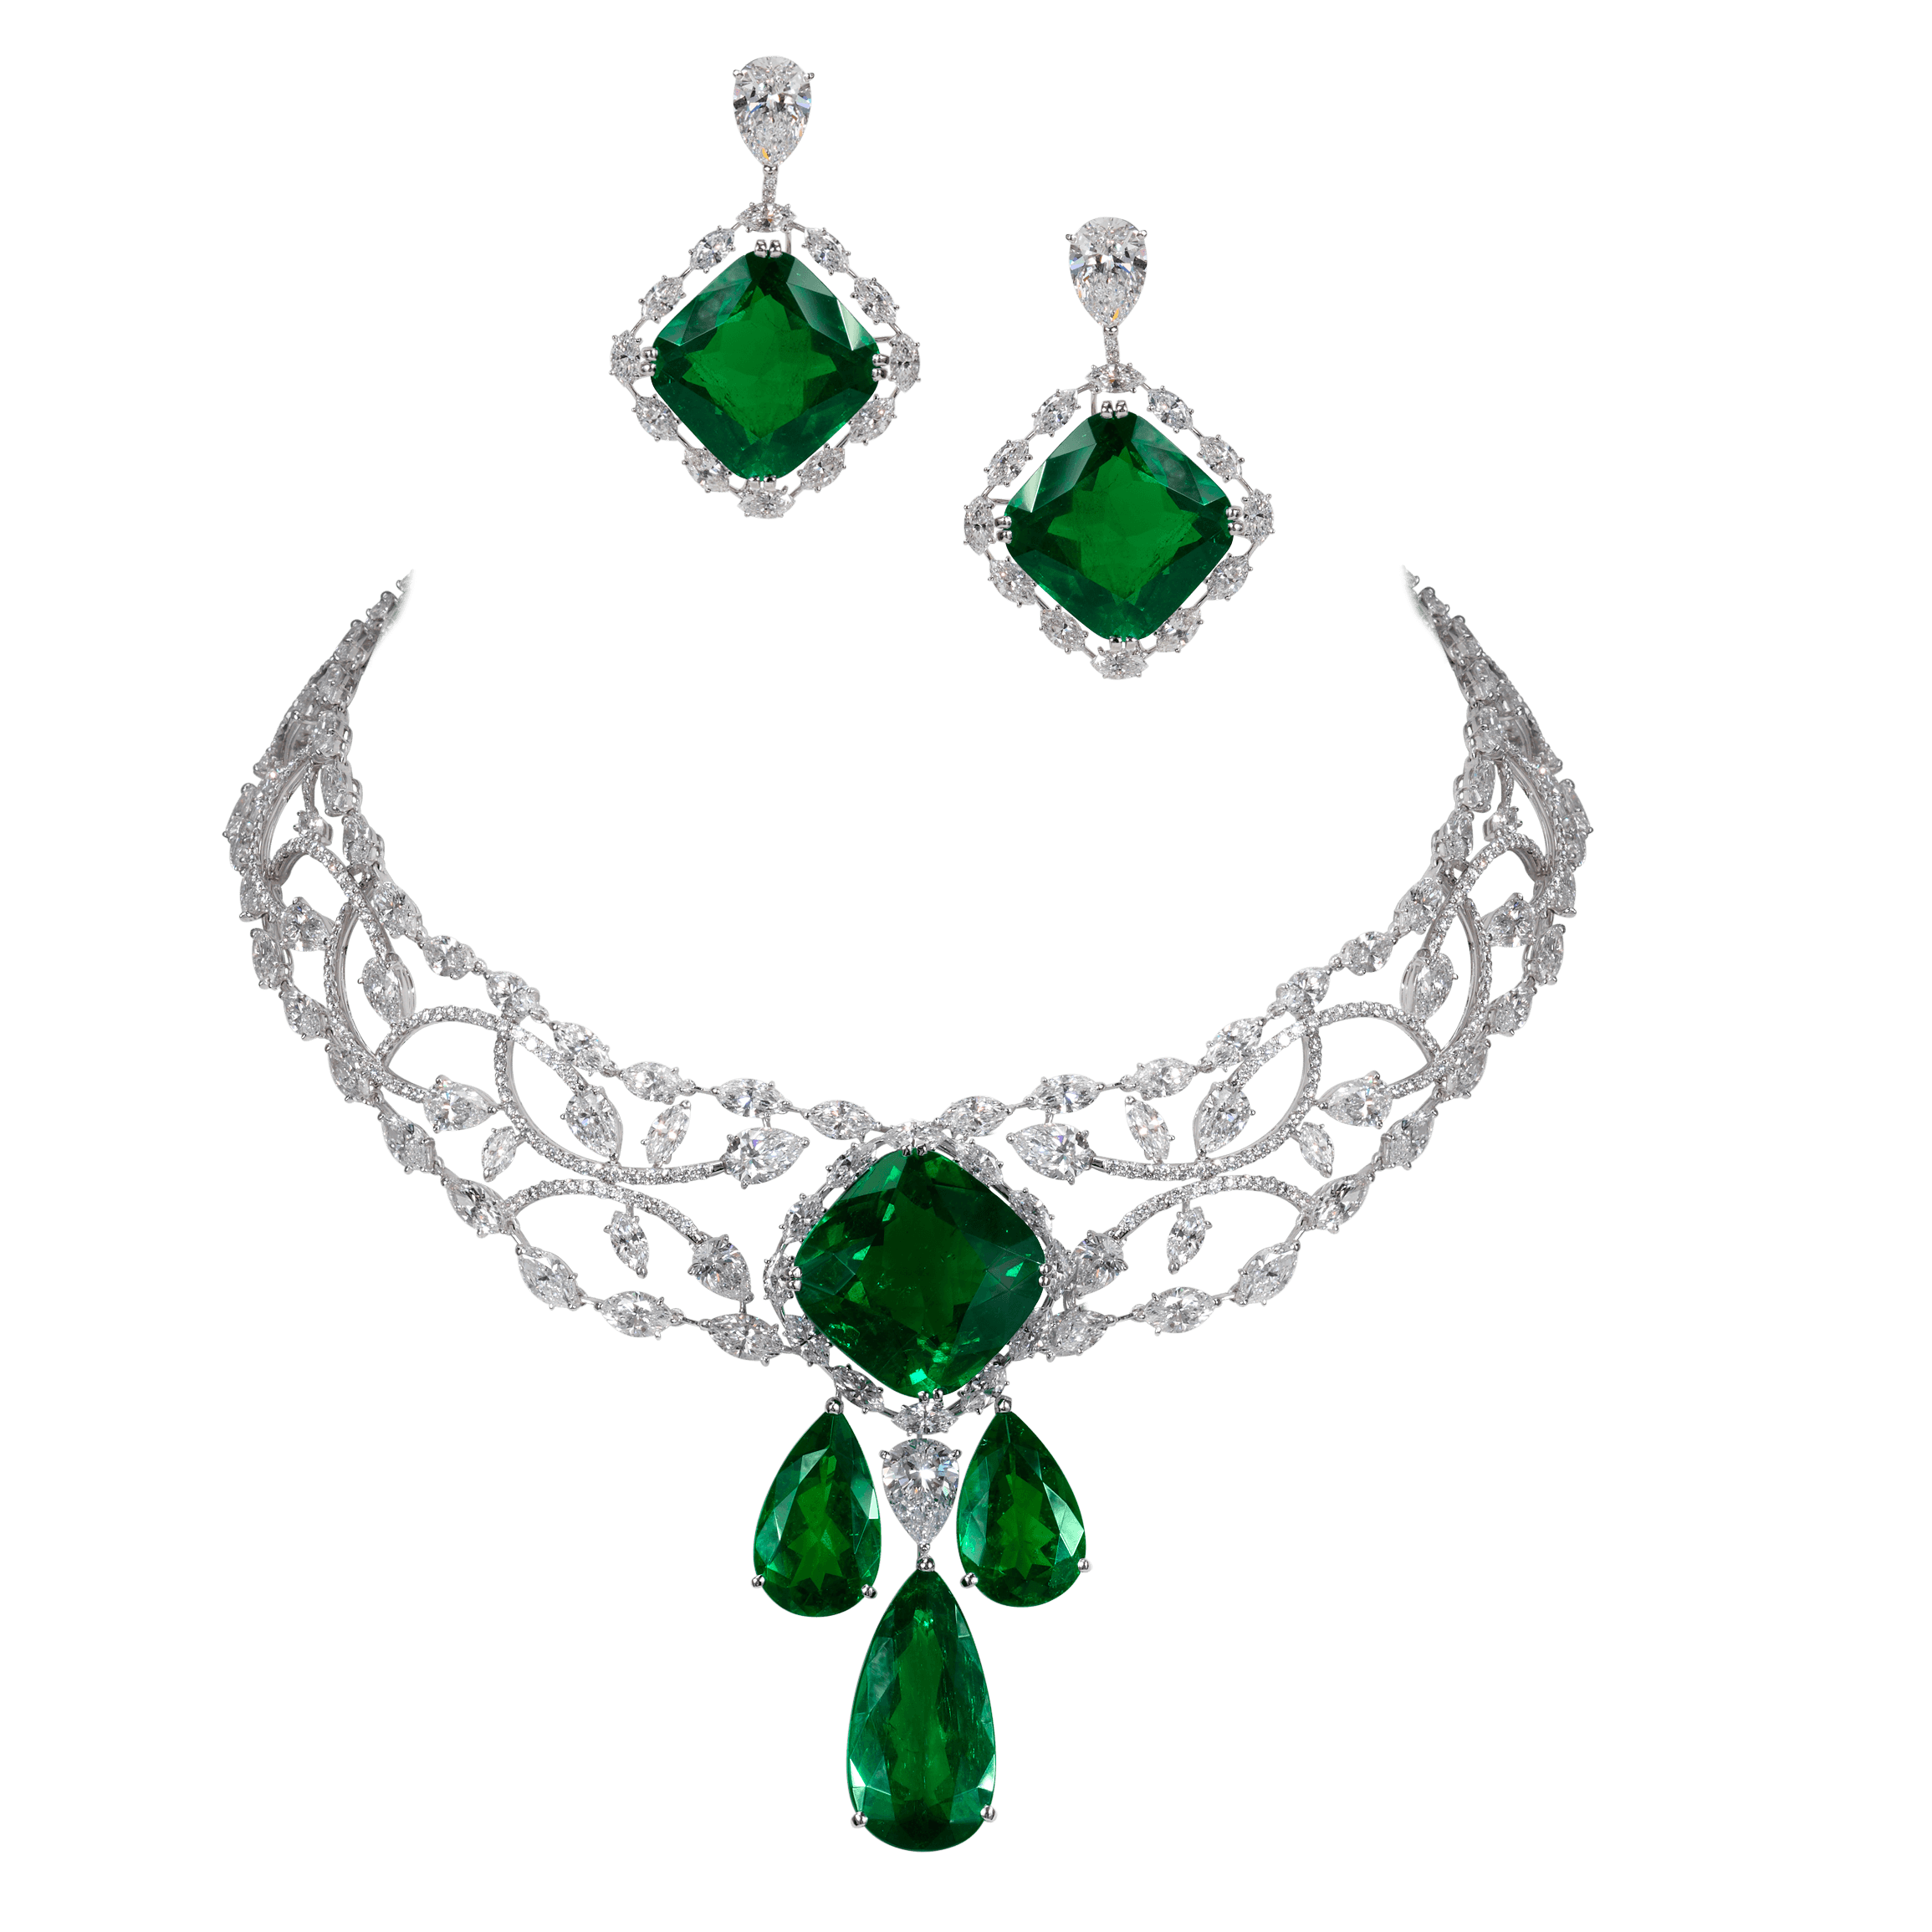 Necklace clipart emerald. Exceptional jewelry moussaieff high